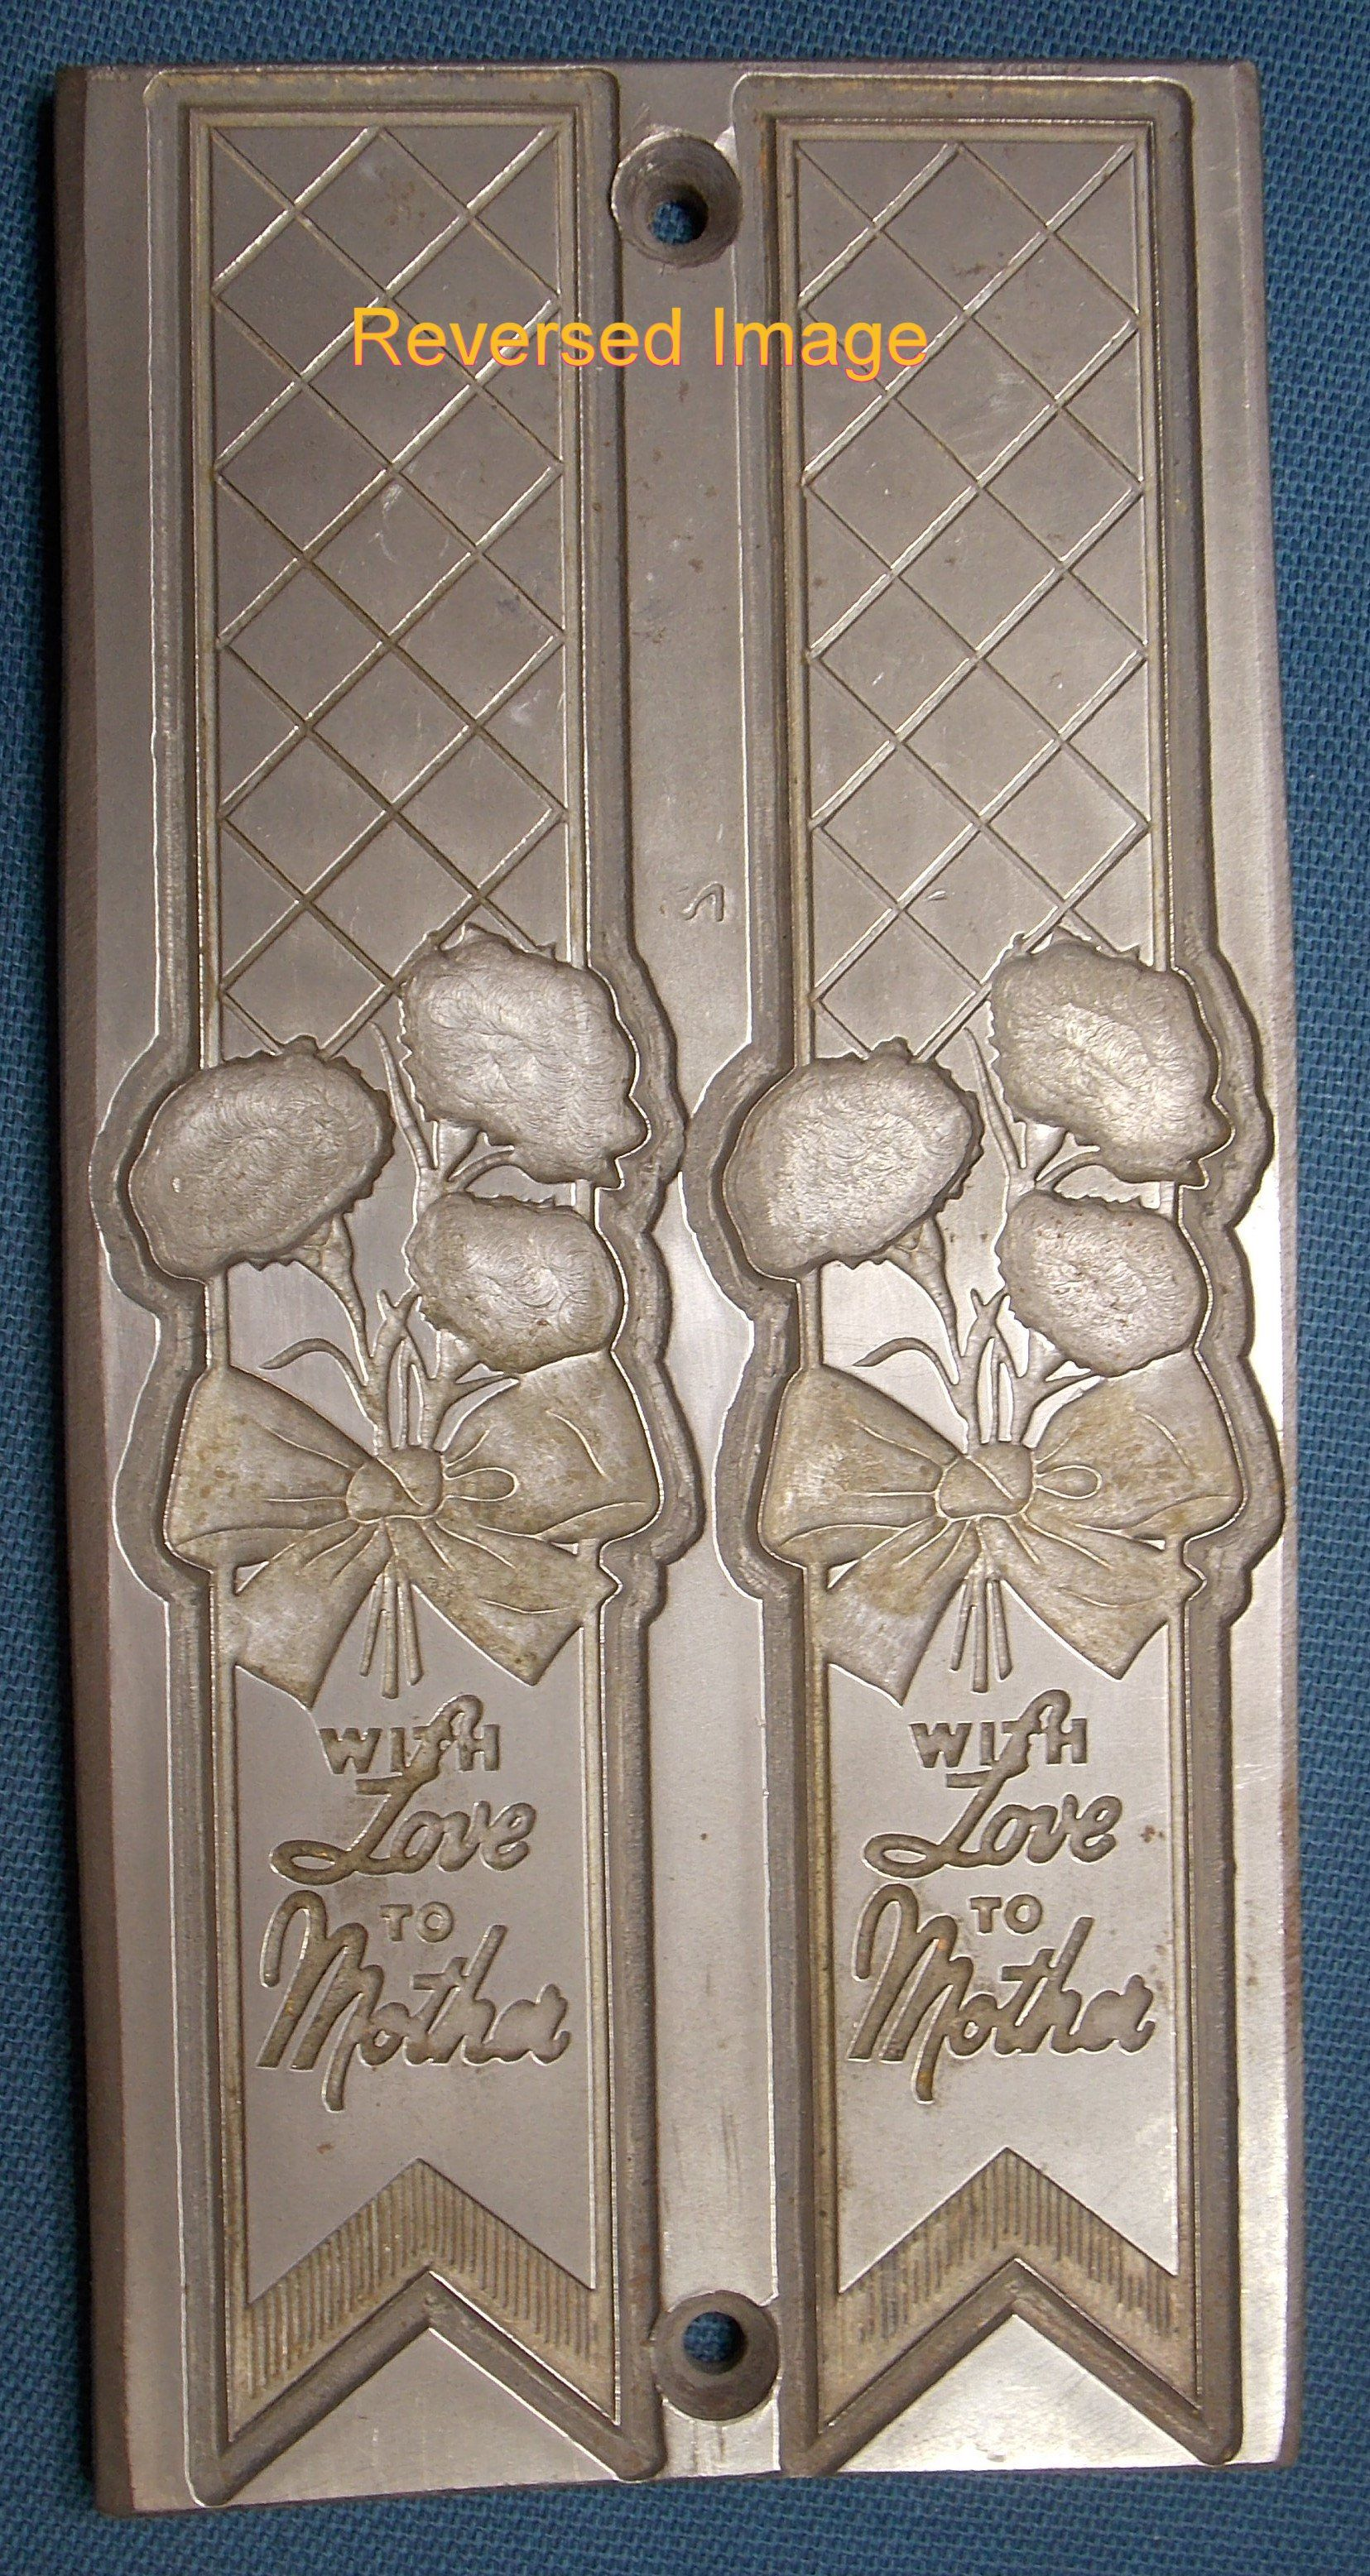 Steel Letterpress Printing Plate With Love To Mother